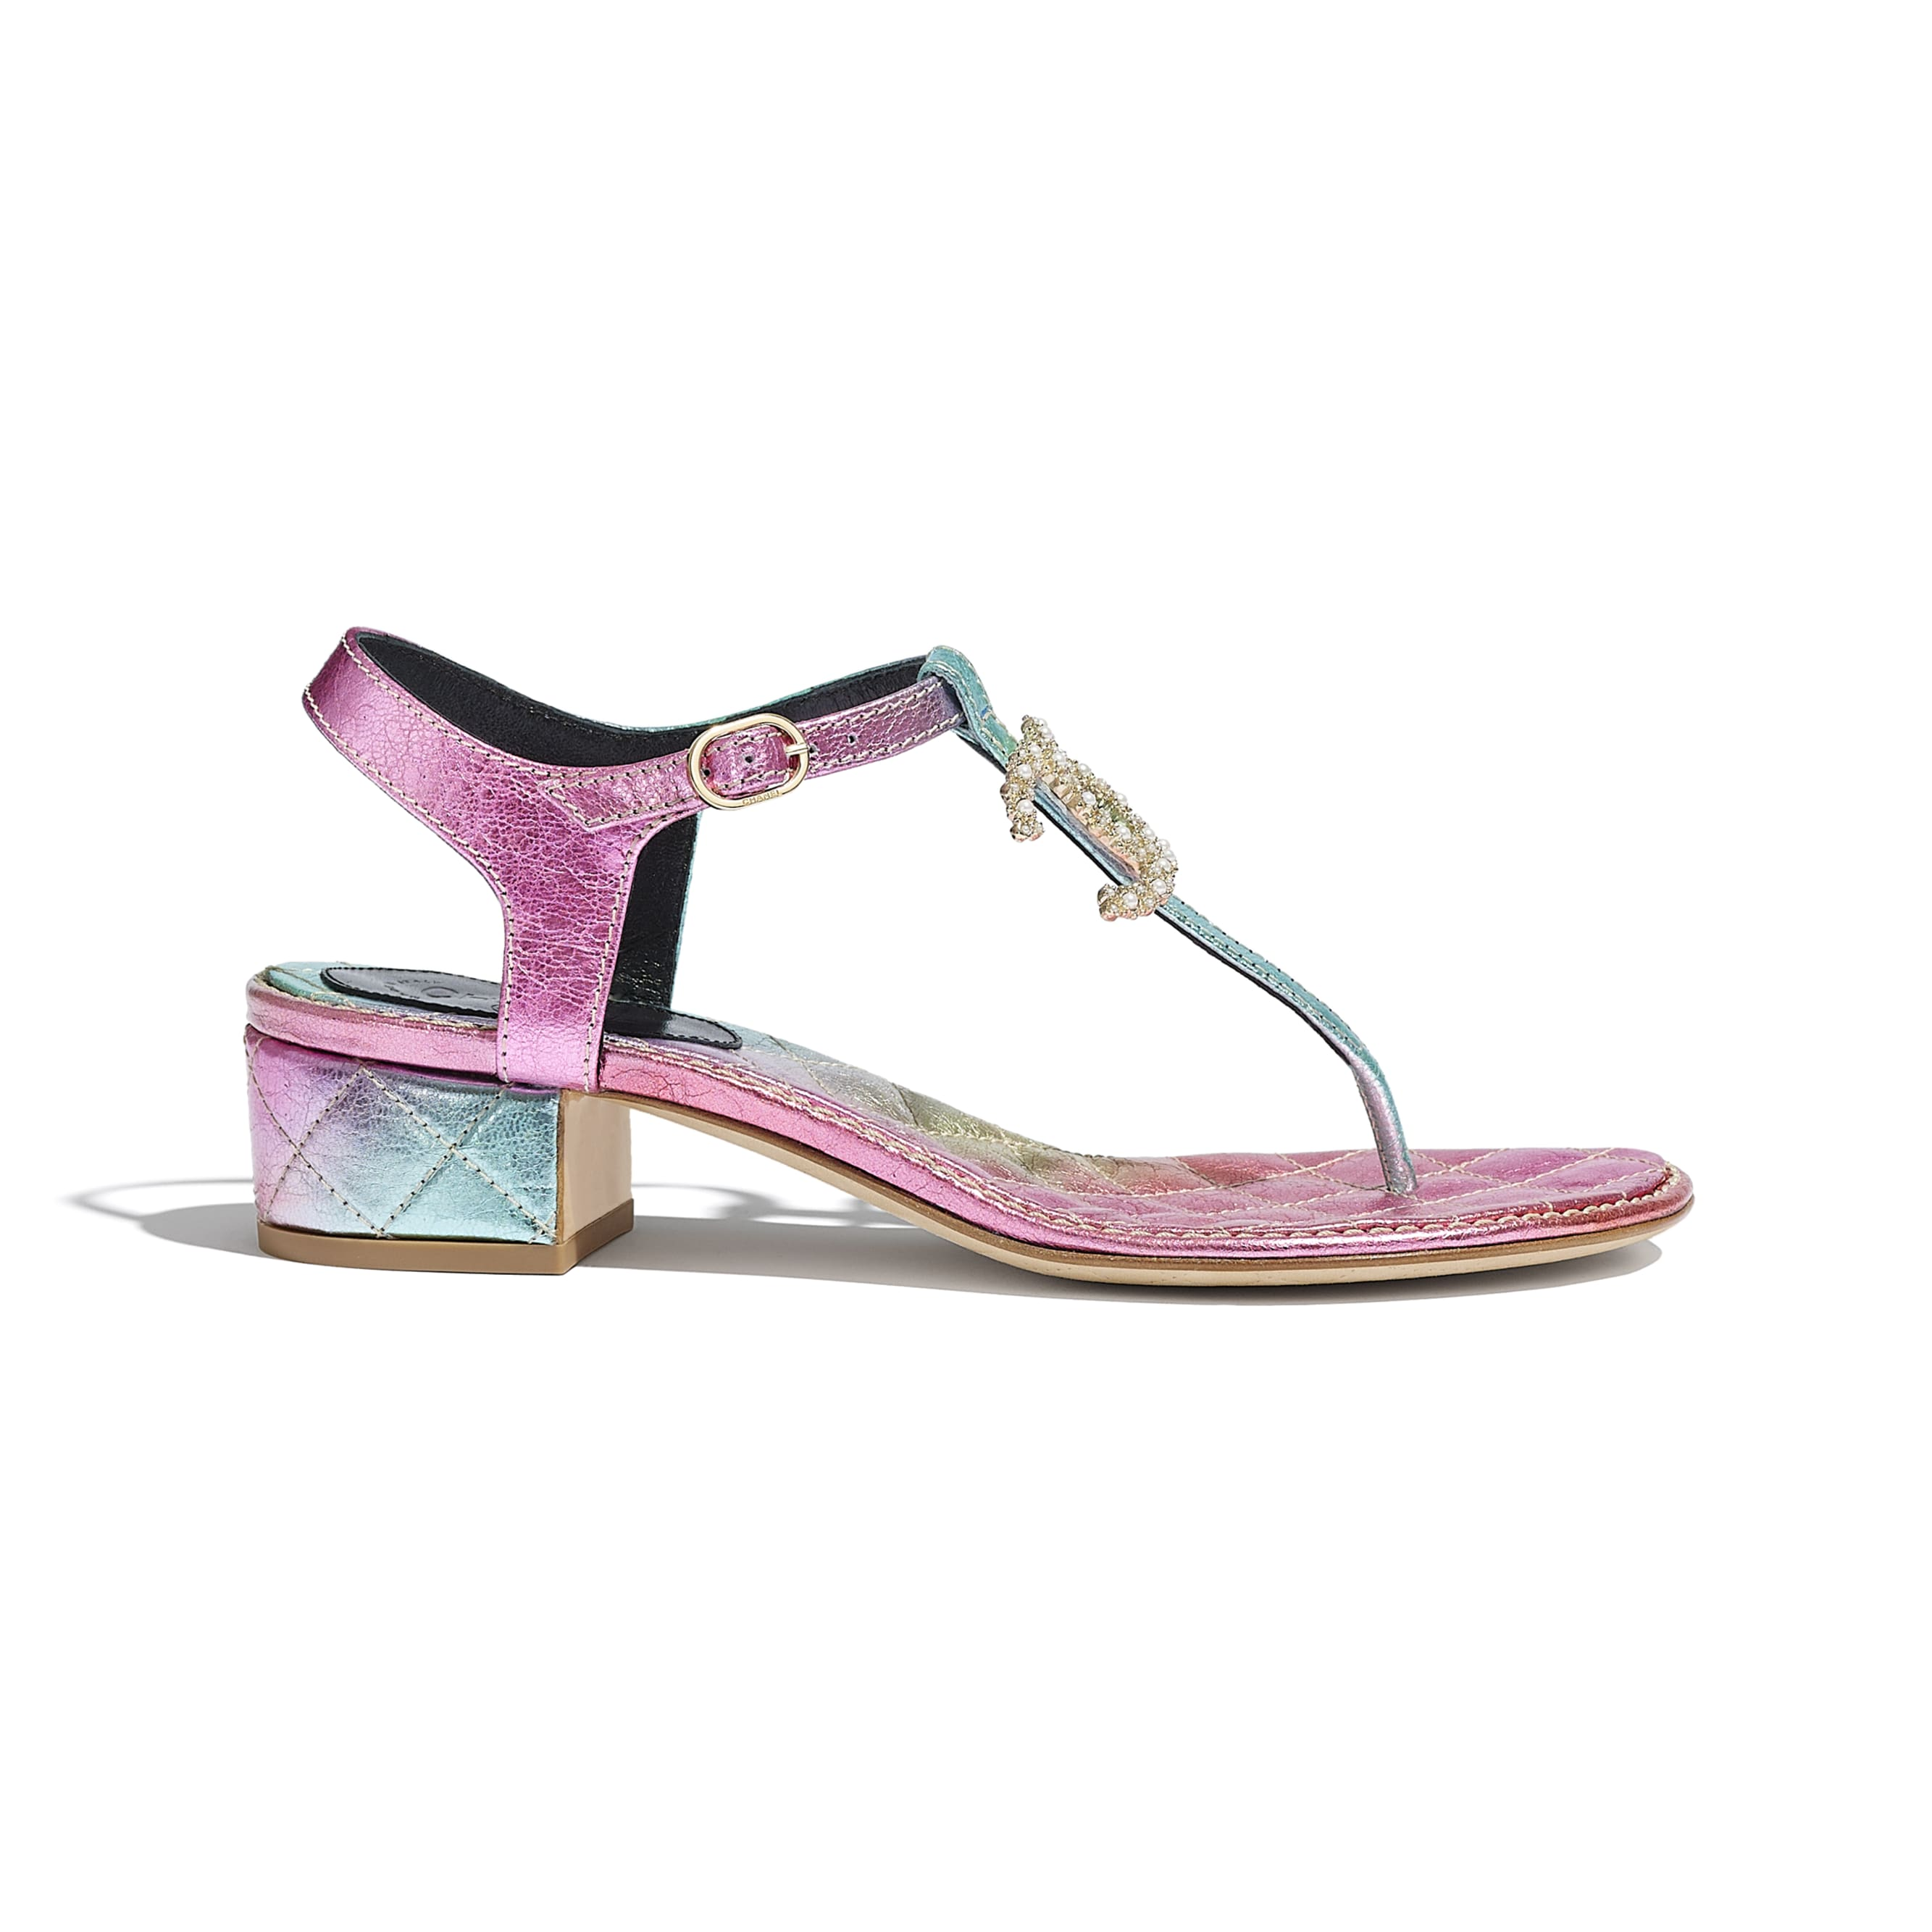 Sandals - Multicolour - Laminated Calfskin - CHANEL - Default view - see standard sized version